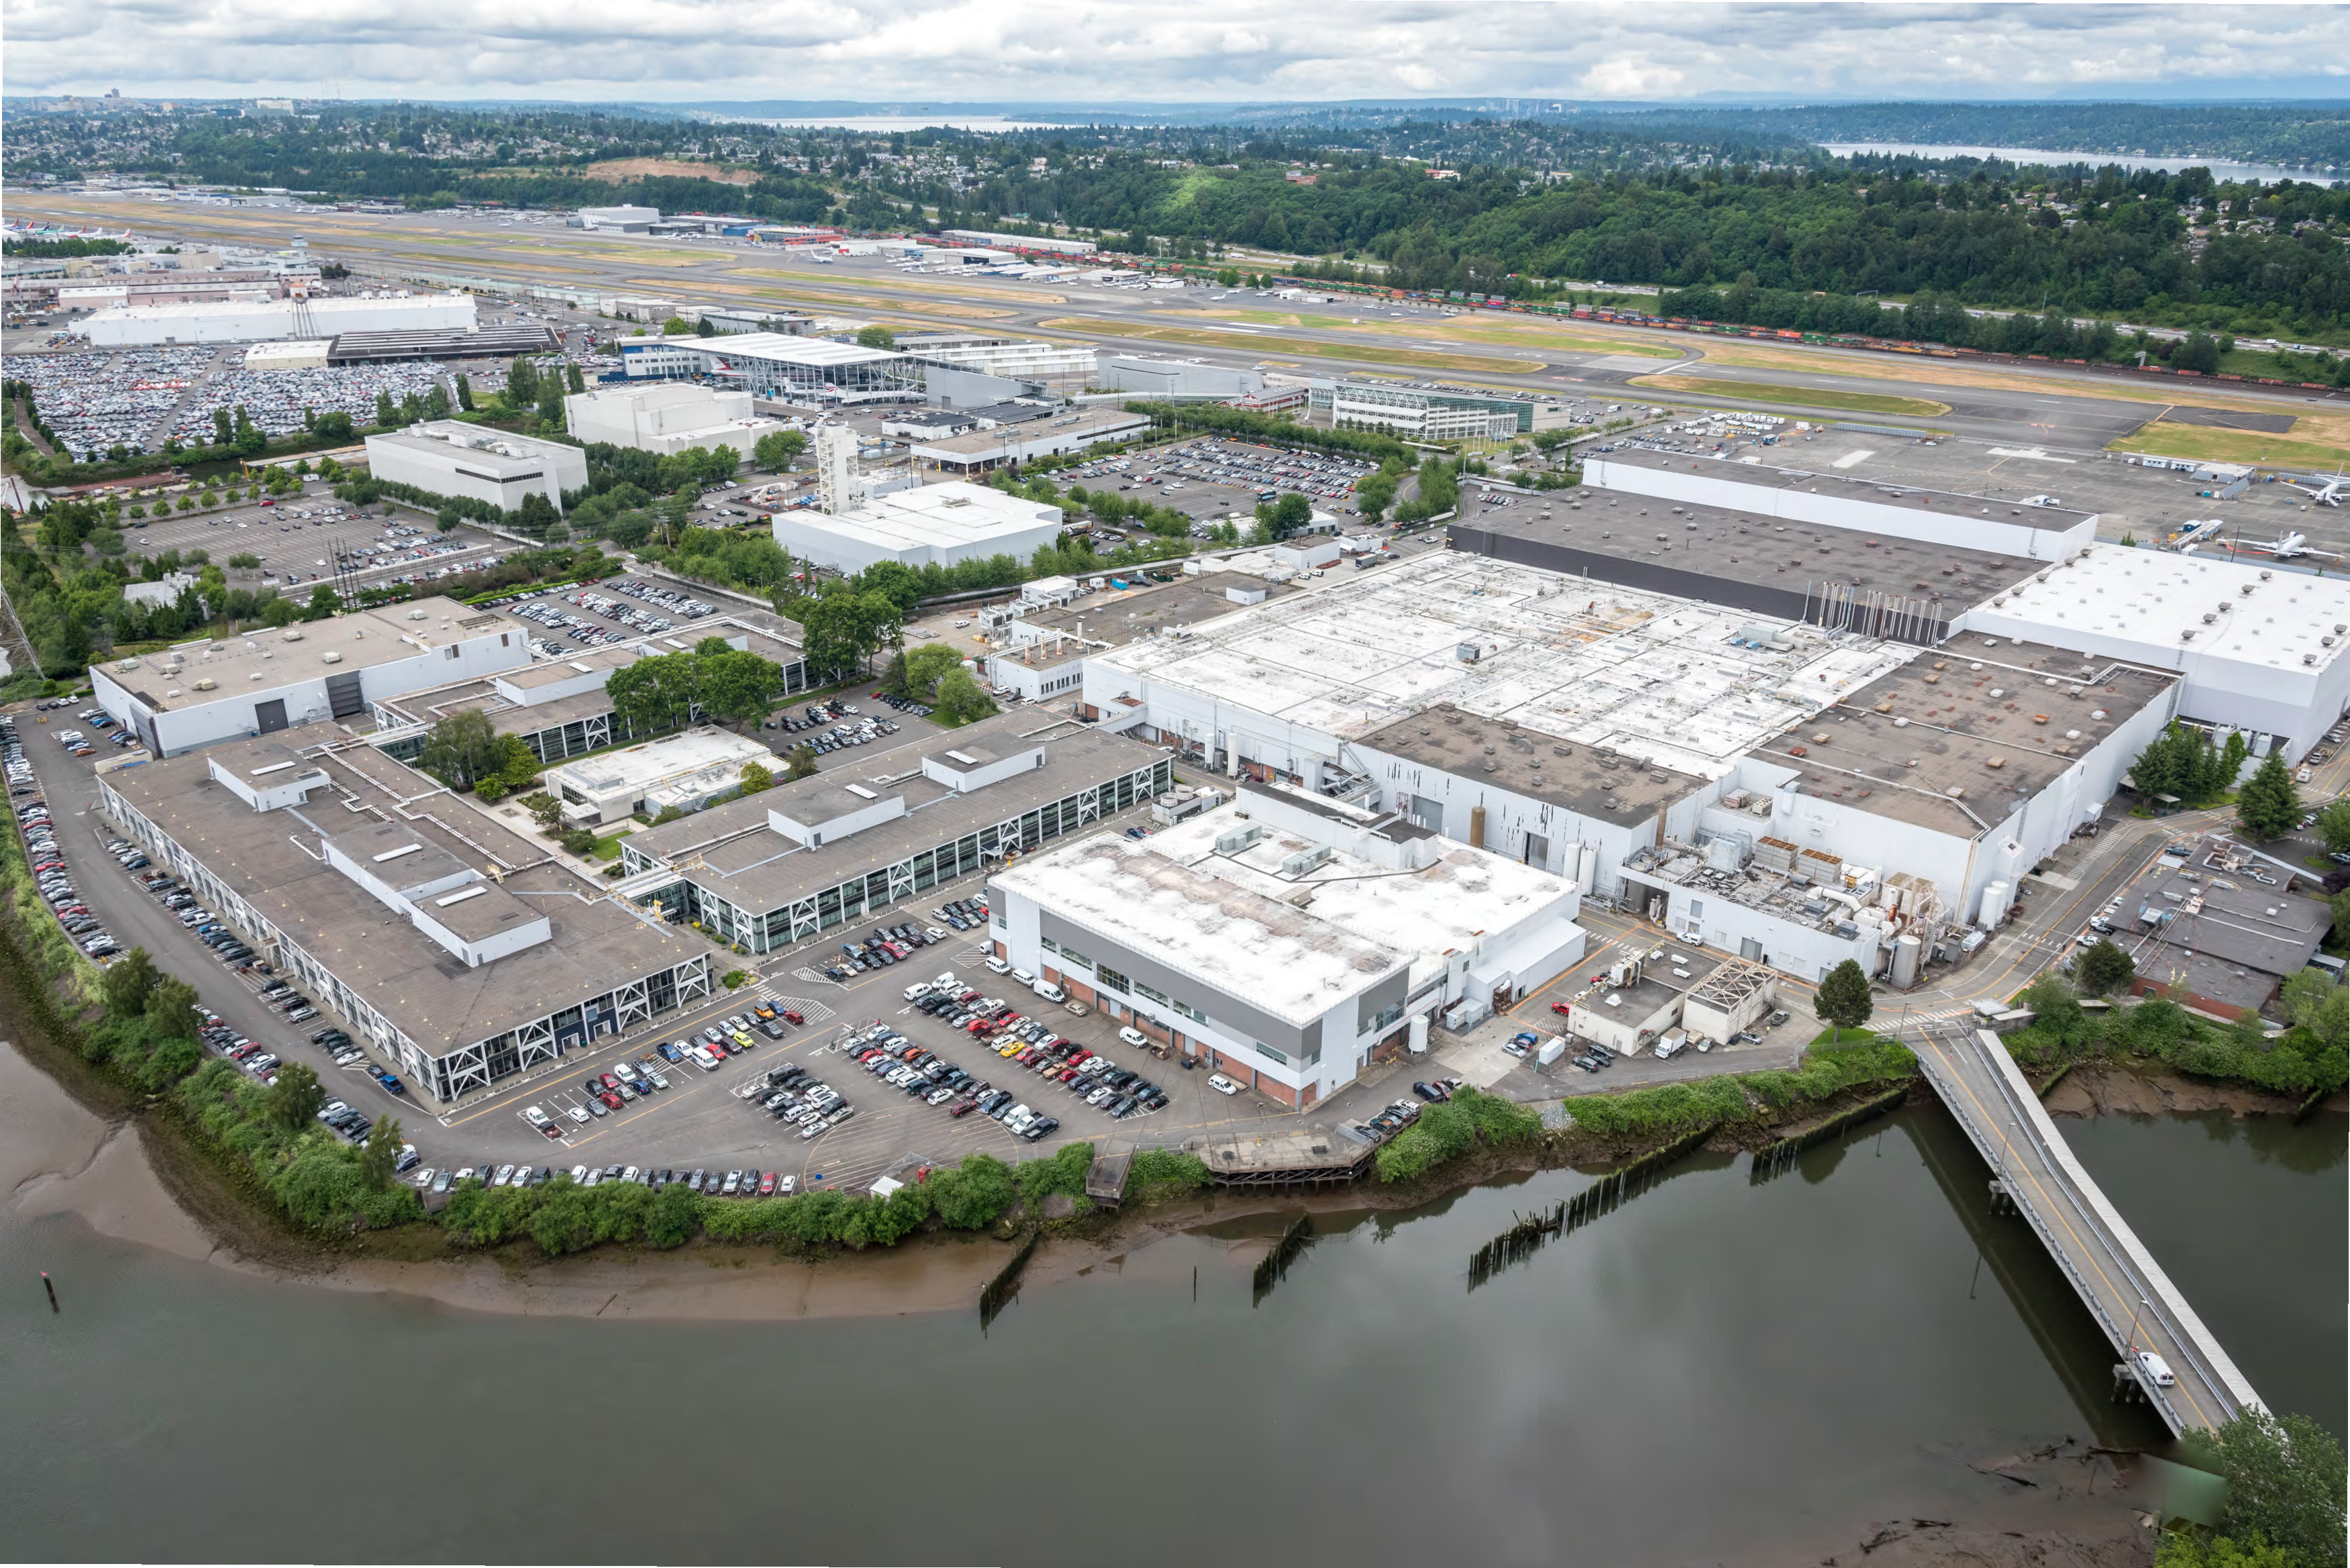 A commercial and industrial site with many buildings and parking areas. A river is seen in the foreground, and the background shows more industial buildings, an airfield and a wooded ridge with homes.